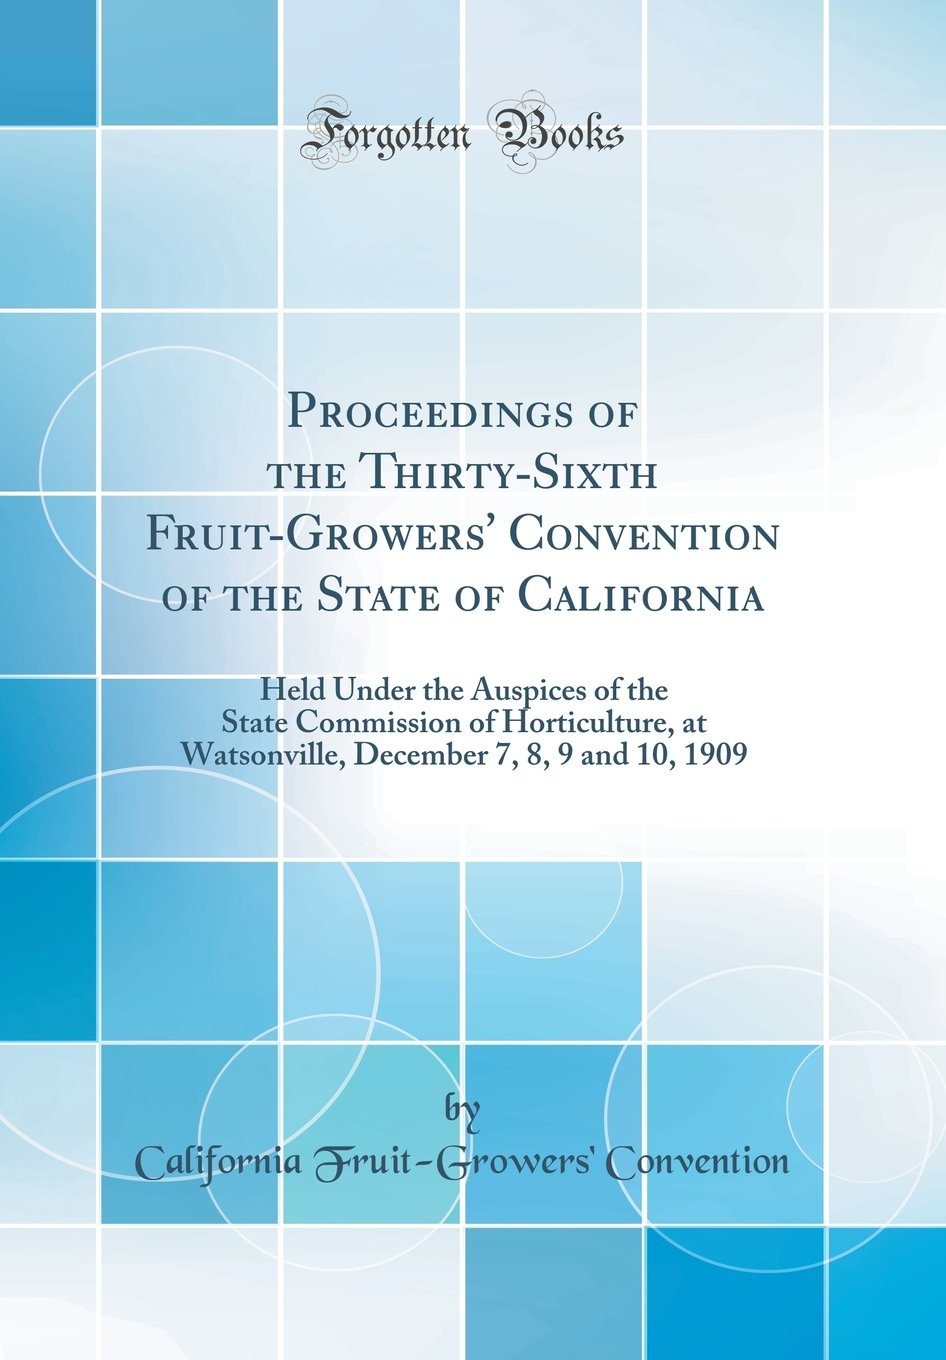 Download Proceedings of the Thirty-Sixth Fruit-Growers' Convention of the State of California: Held Under the Auspices of the State Commission of Horticulture, ... 7, 8, 9 and 10, 1909 (Classic Reprint) pdf epub